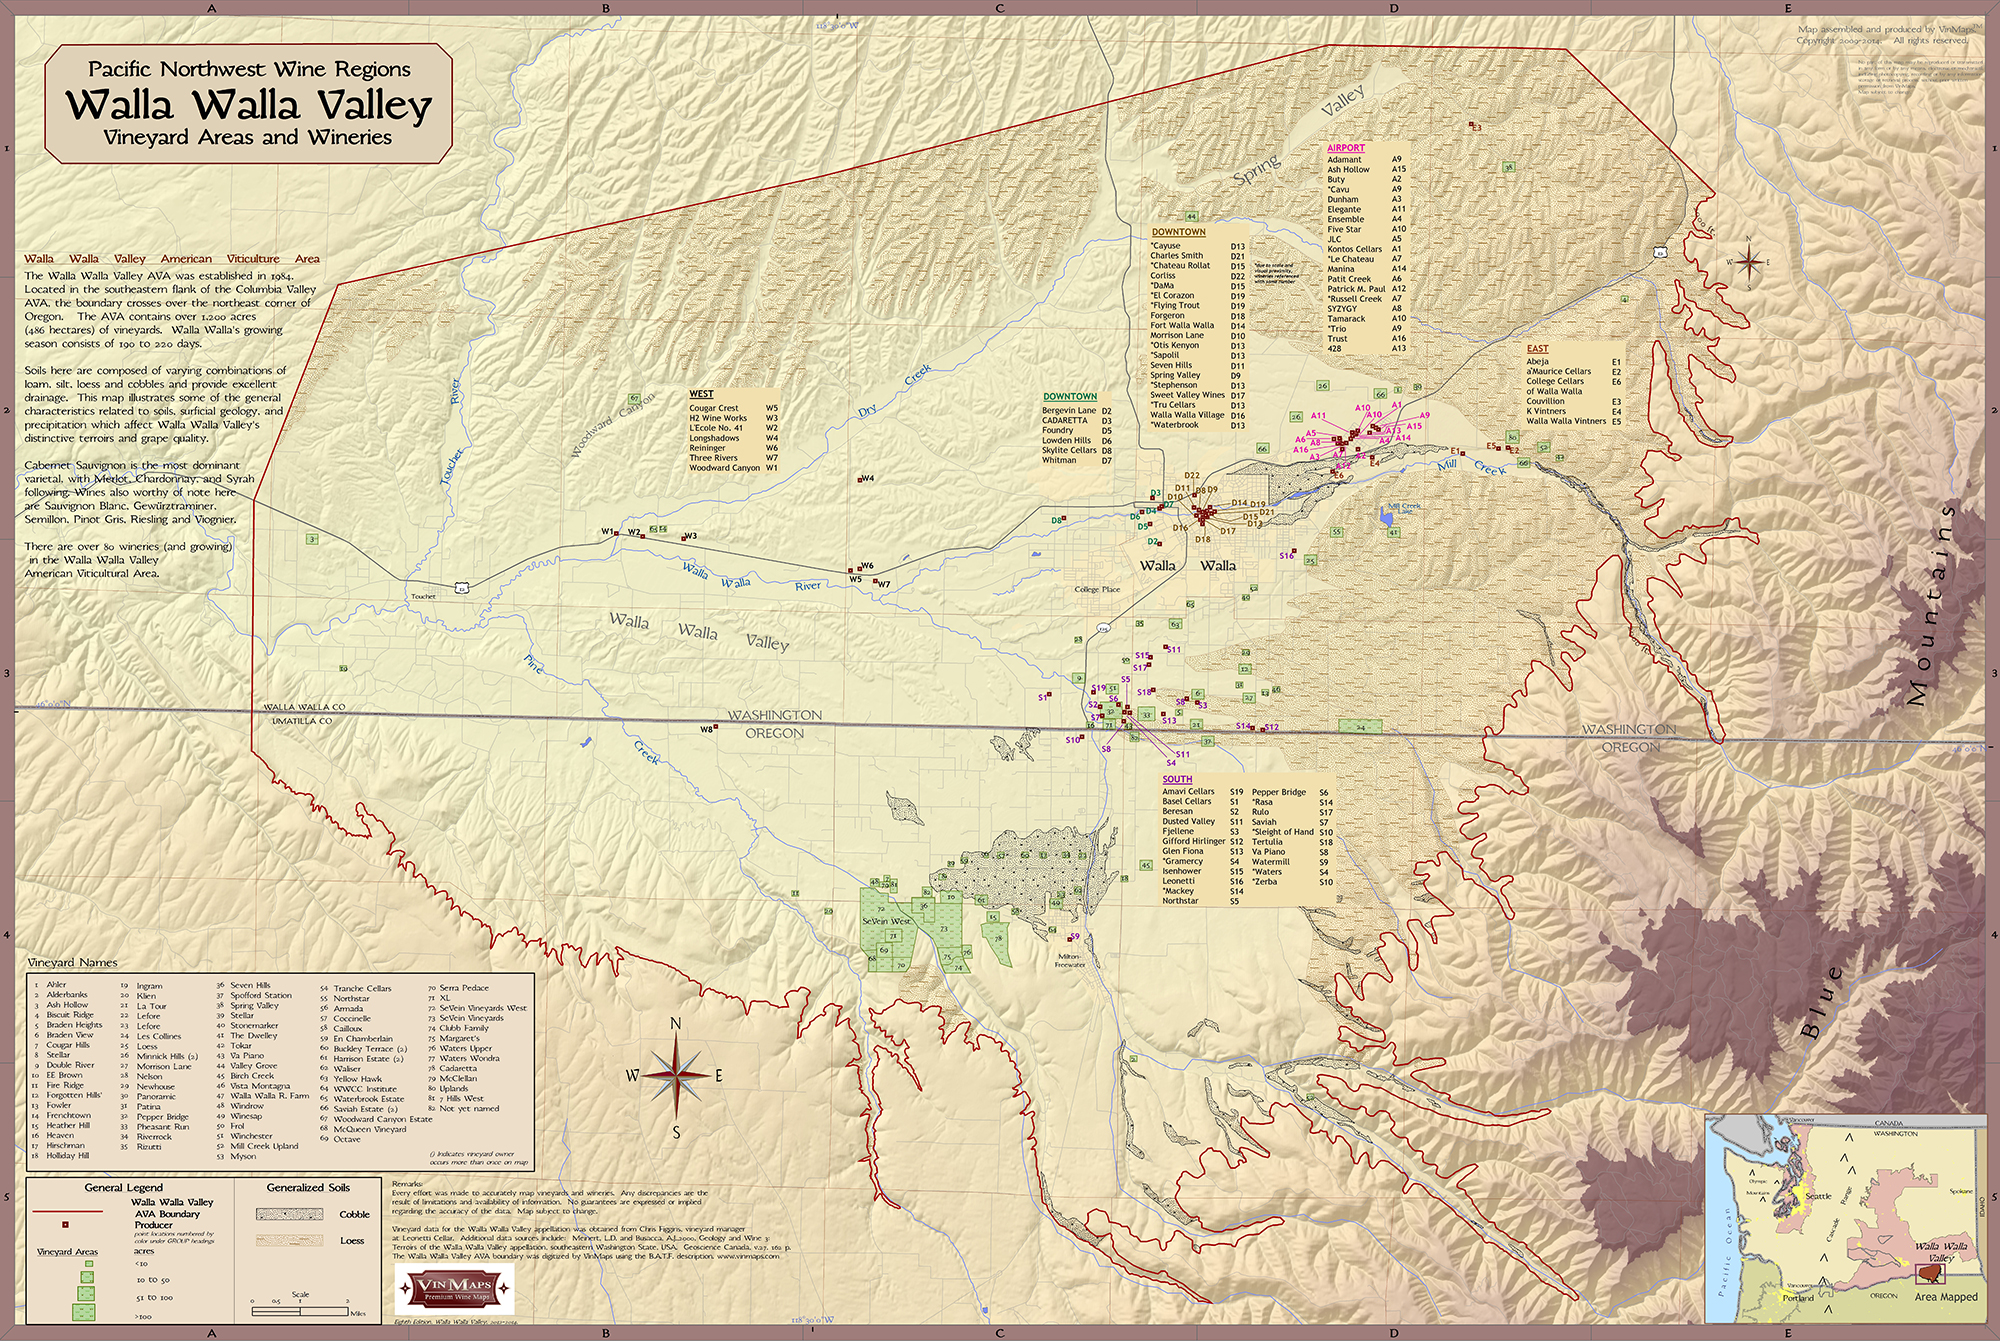 Pacific Northwest Wine Regions